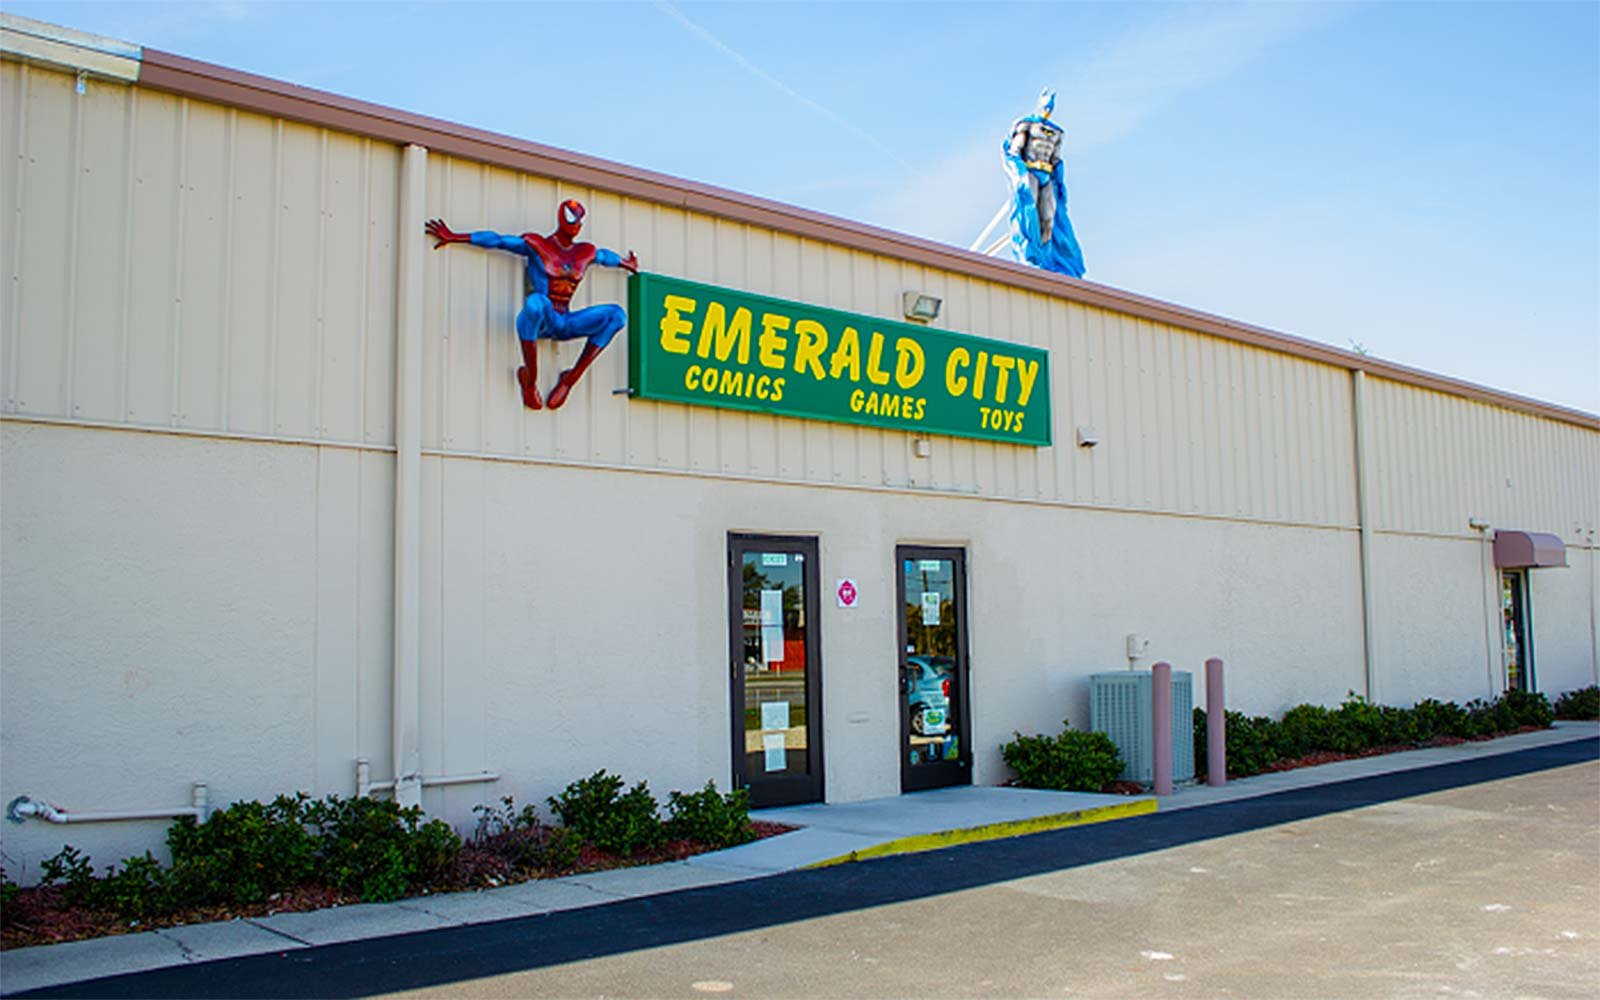 Emerald City Clearwater Florida